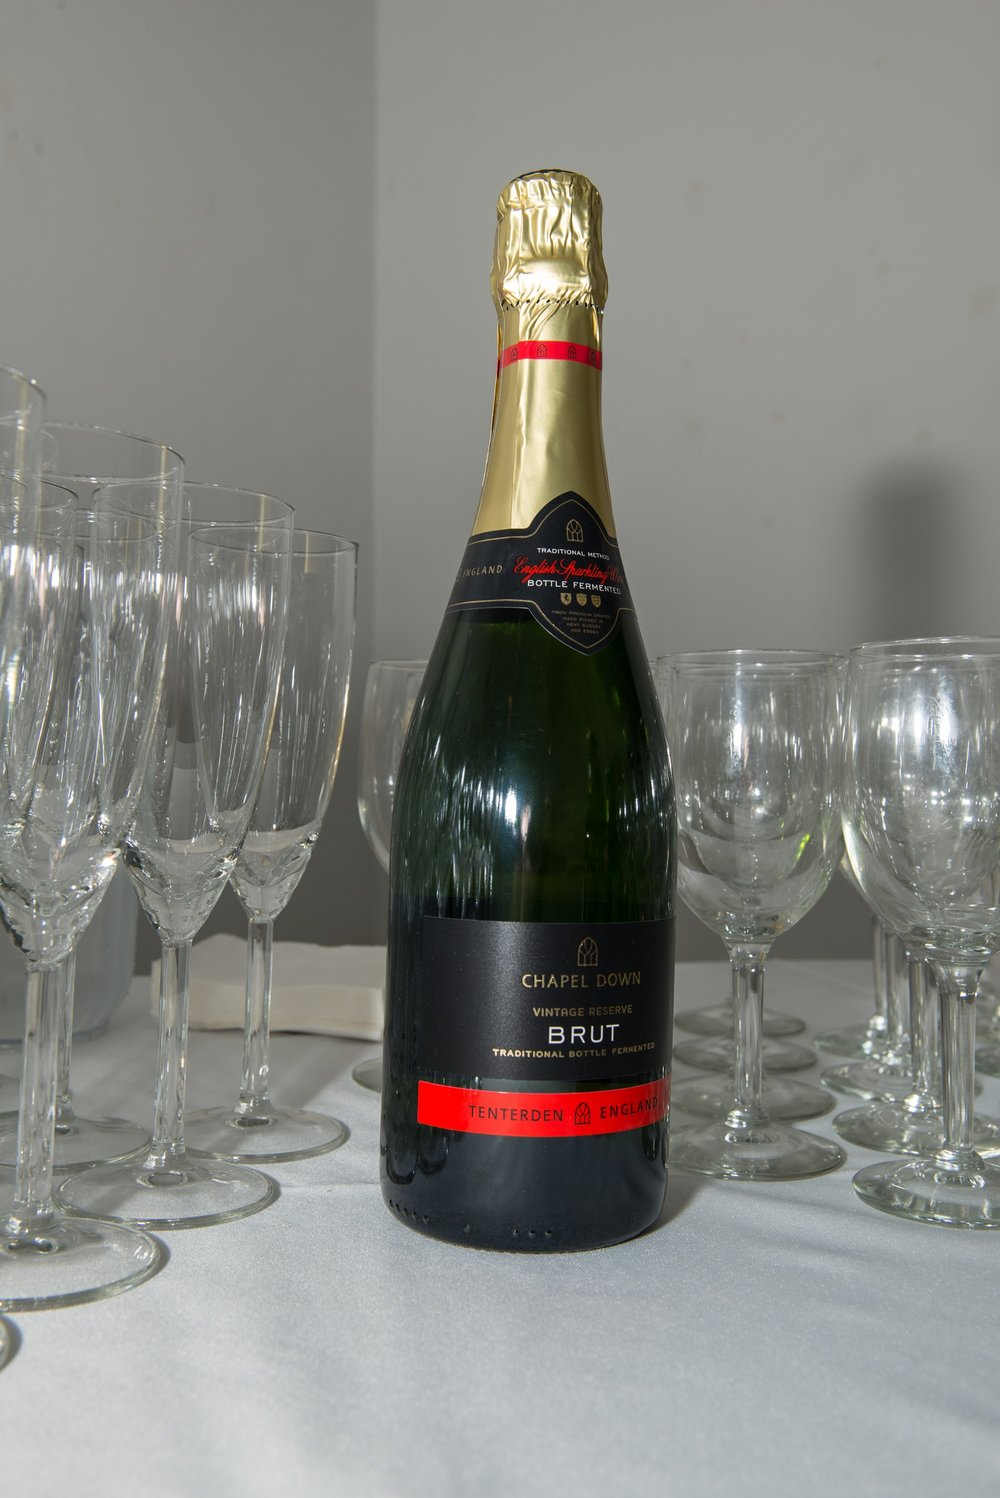 The sparkling wine was kindly donated by  Chapel Down .